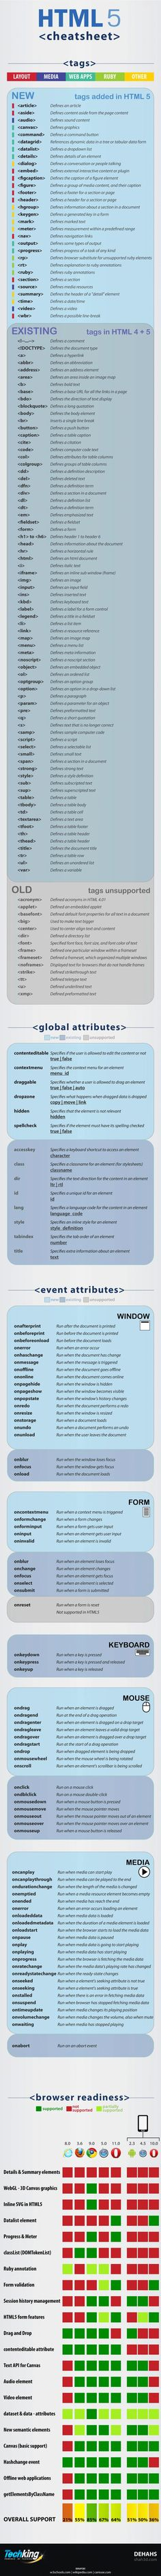 The Ultimate HTML 5 Cheat Sheet | Bit Rebels